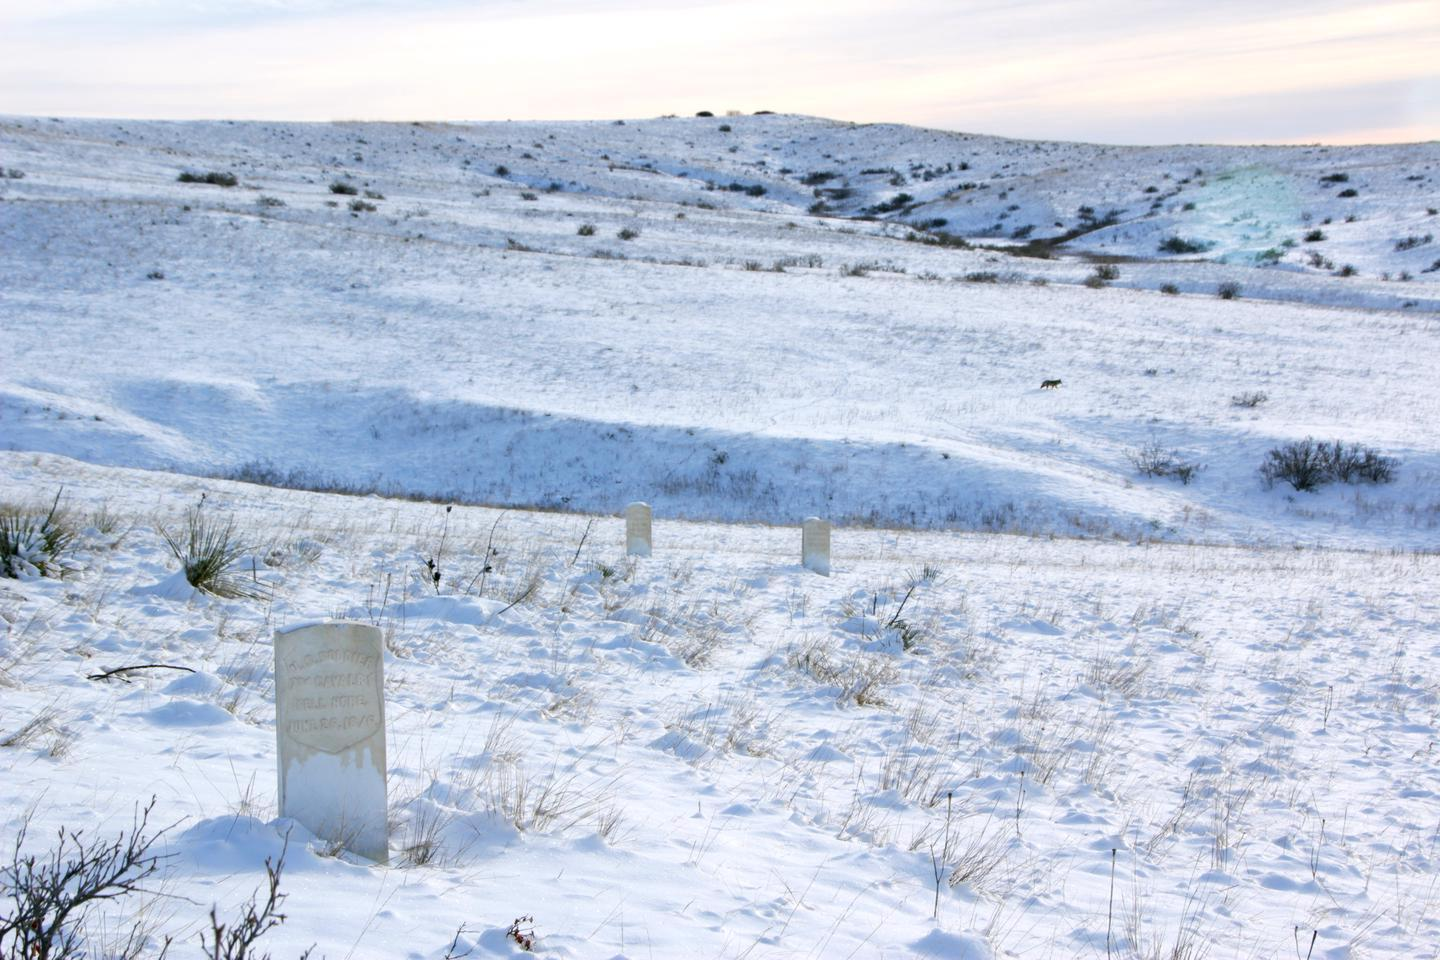 Headstones in the winterThe monument and battlefield are open year round, even in winter when snow coats the ground.